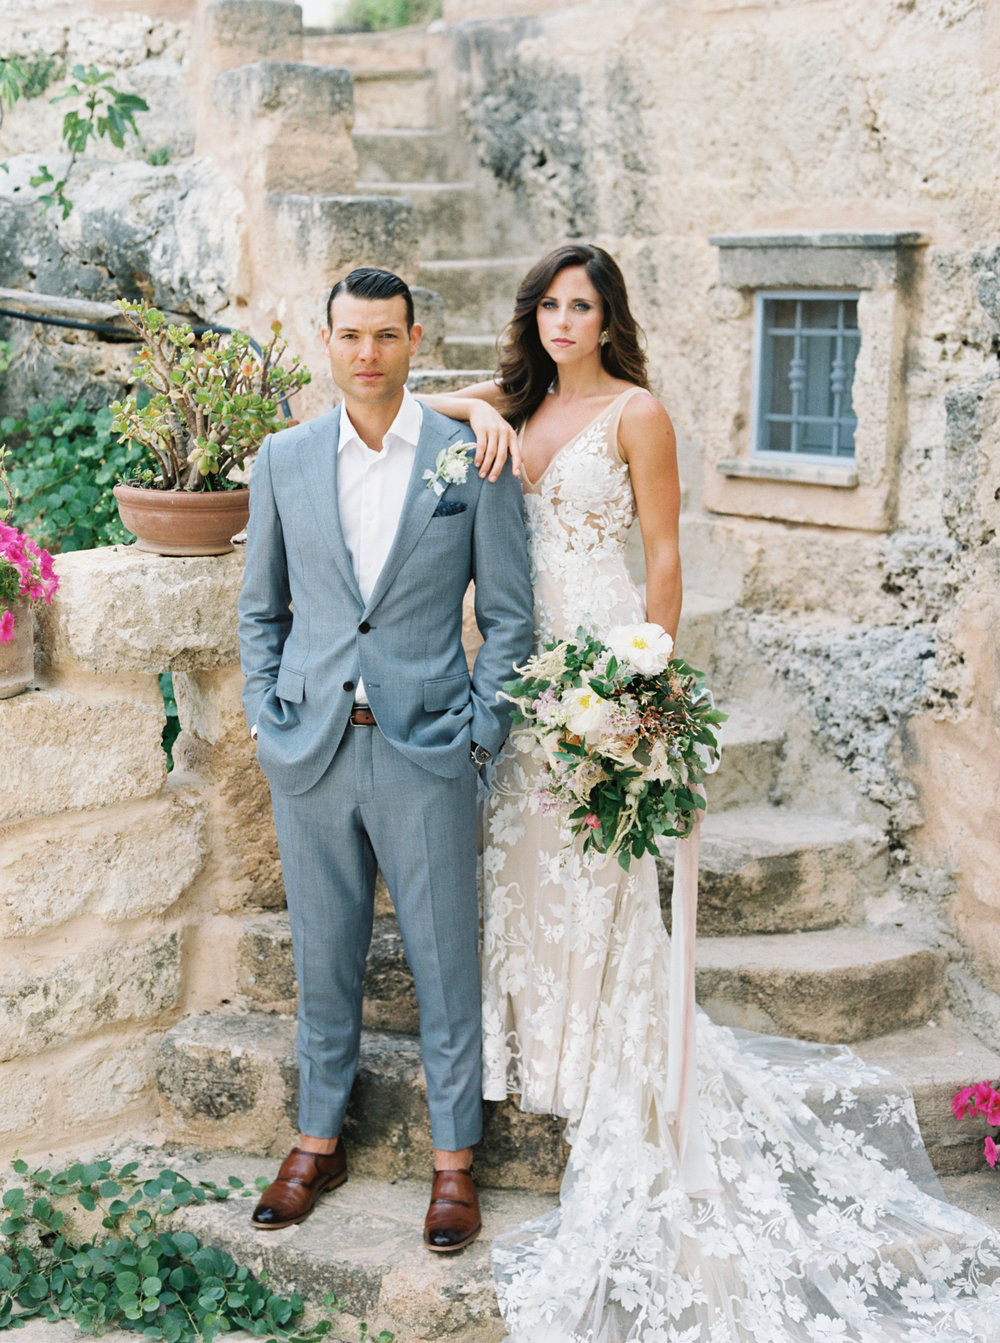 Puglia, Italy destination wedding by Meggie Francisco at Masseria Montenapoleone in Puglia. Photography by Tracy Enoch, Video by Innar Hunt, floral by Chiara Sperti Floral Events.